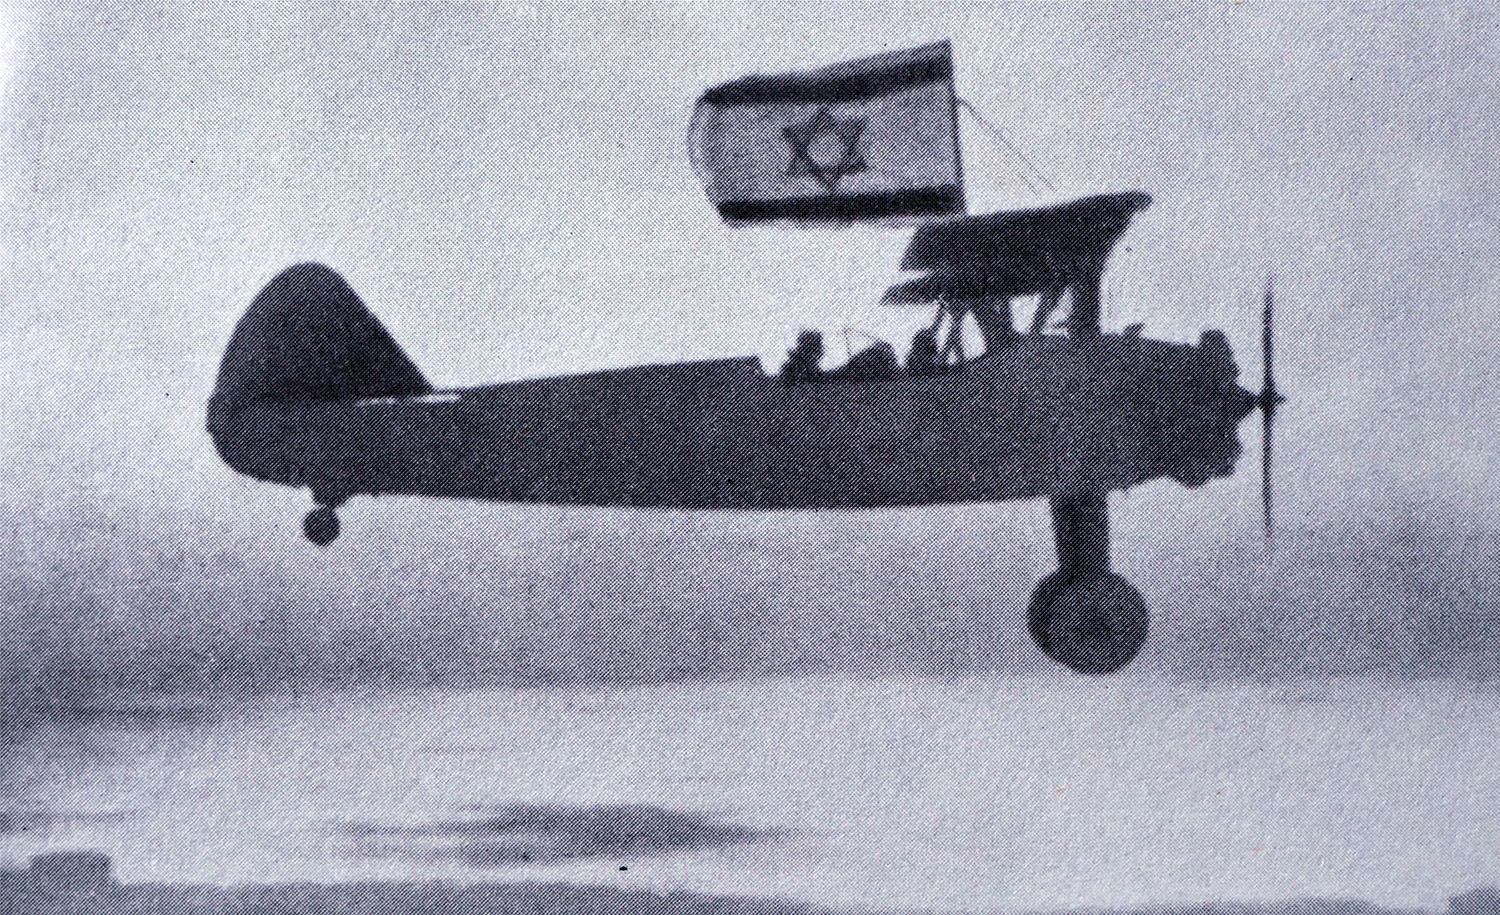 An early Israeli aircraft during the War of Independence in 1948. Universal History Archive/Universal Images Group via Getty Images.